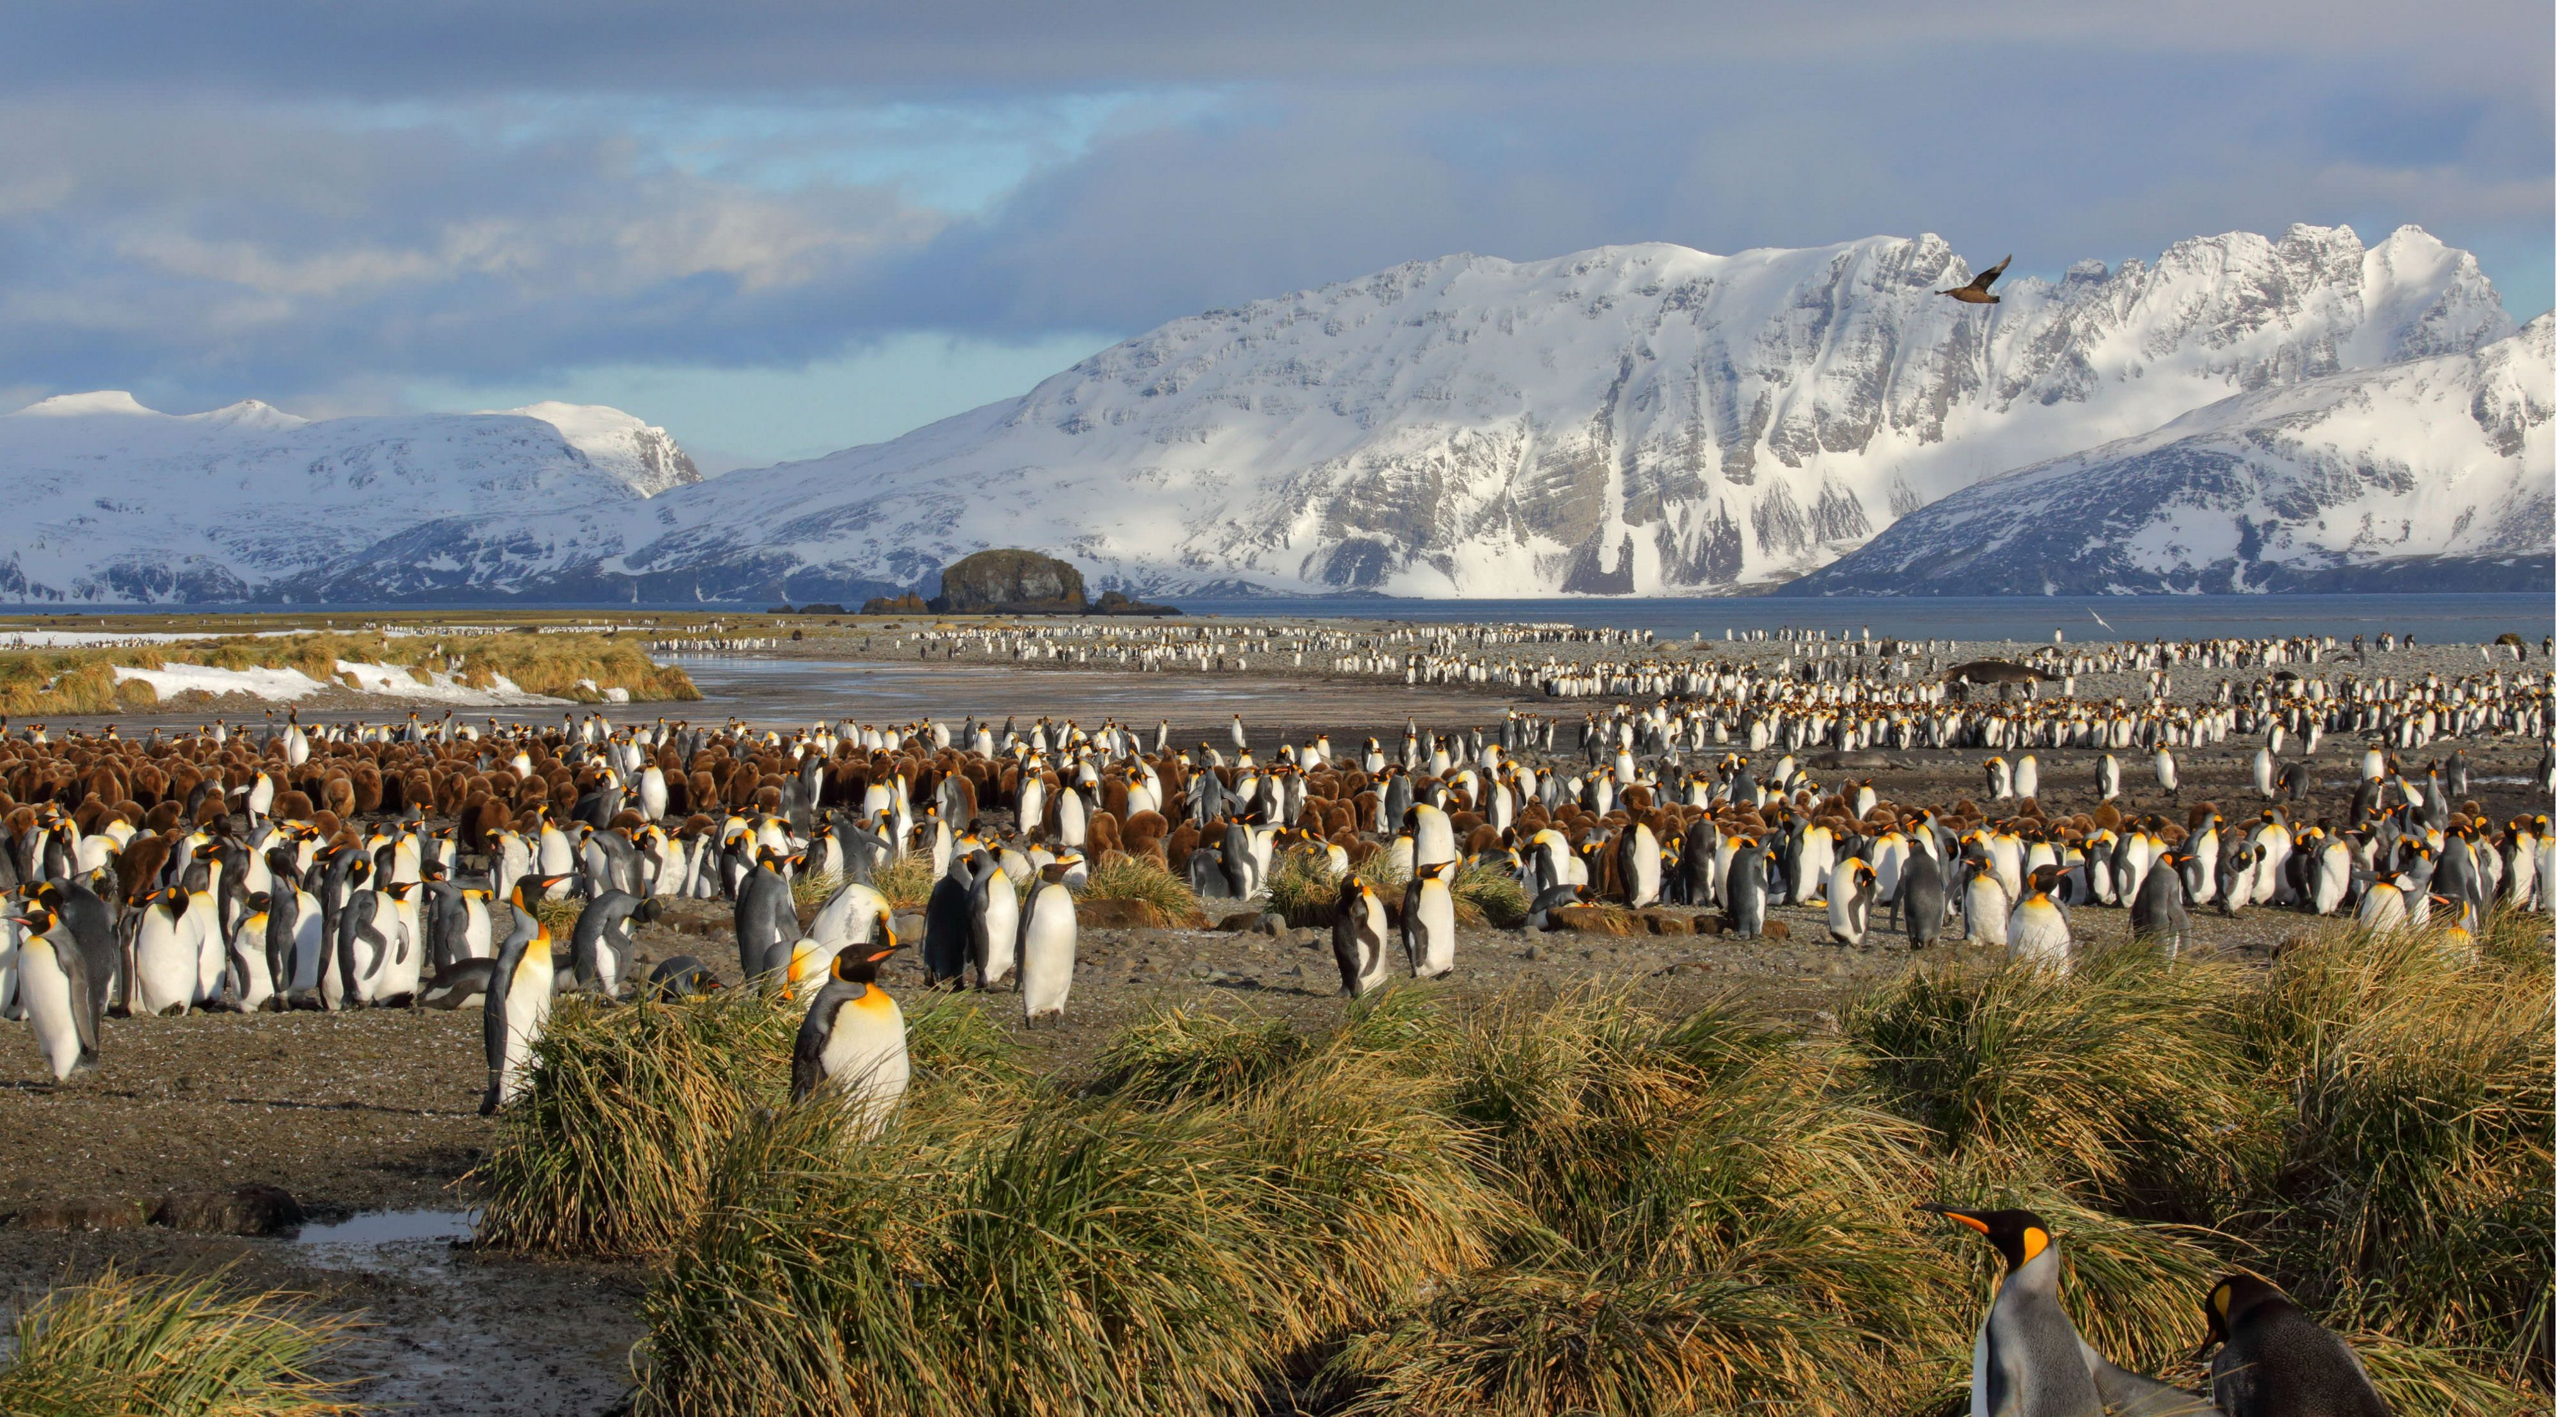 king penguins gather near grasslands and snowcapped mountains